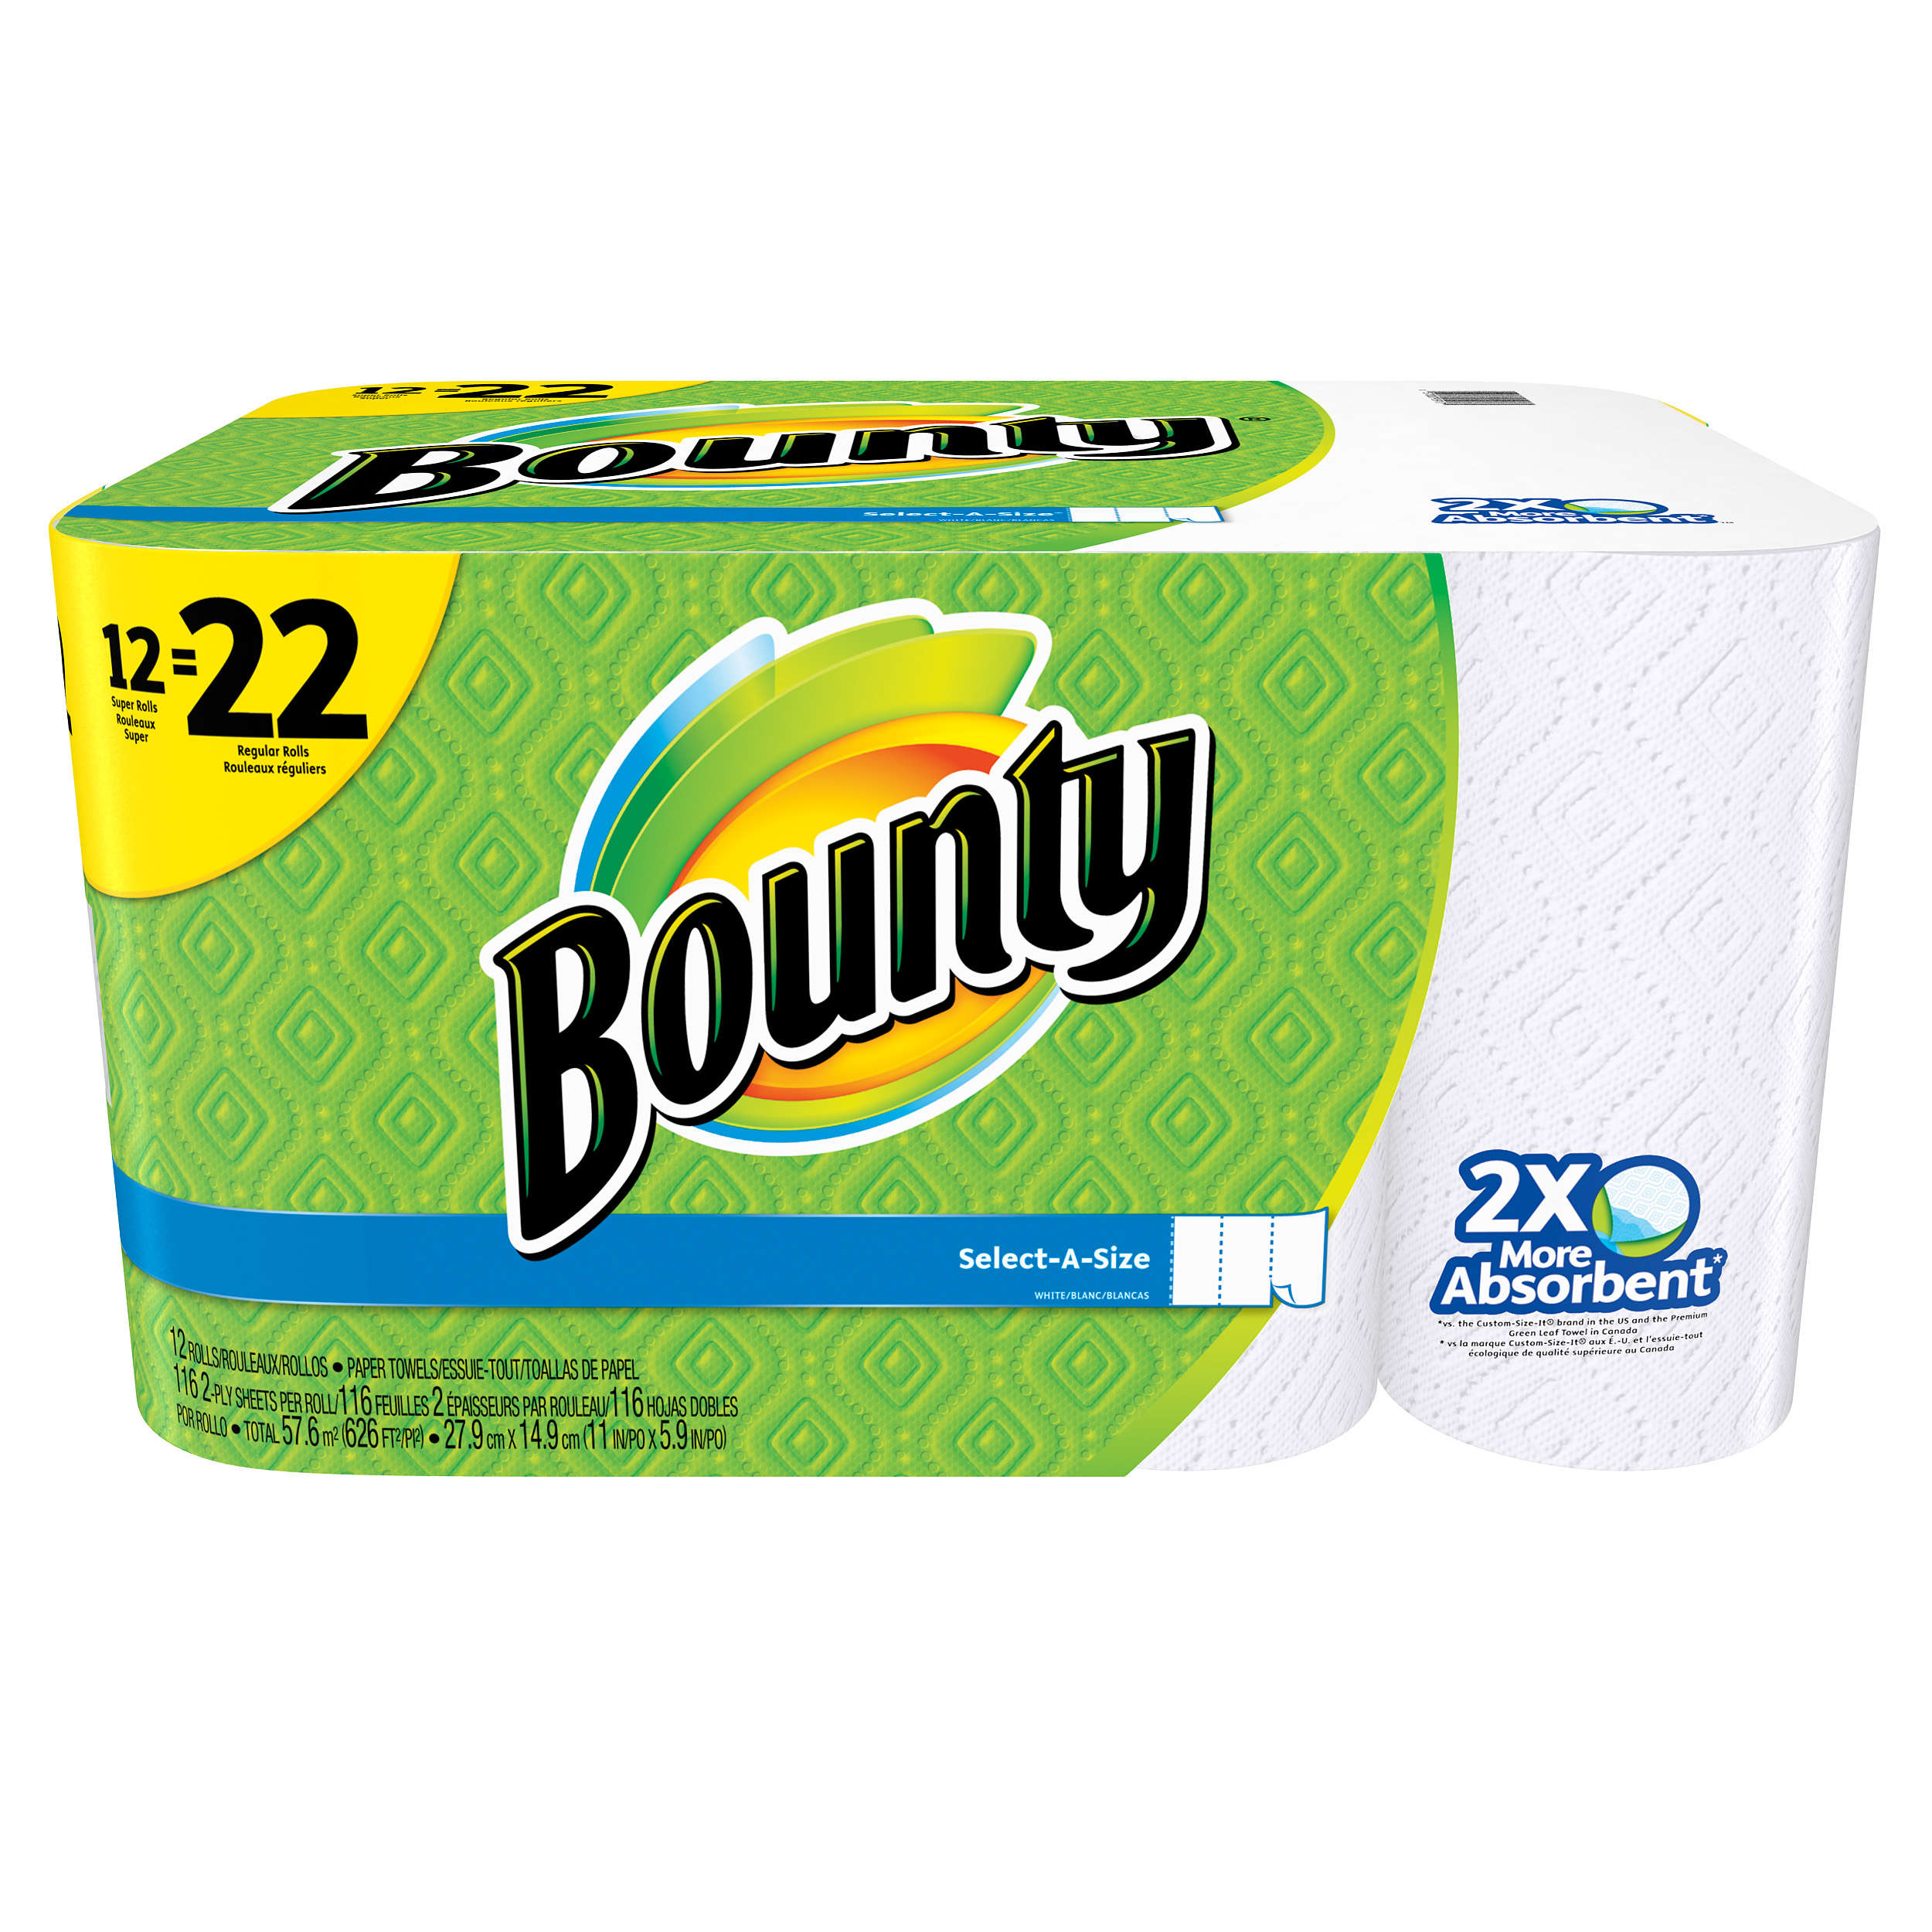 Click here to buy Bounty Paper Towels, Select-A-Size, 12 Super Rolls (22 Regular Rolls) by Bounty.